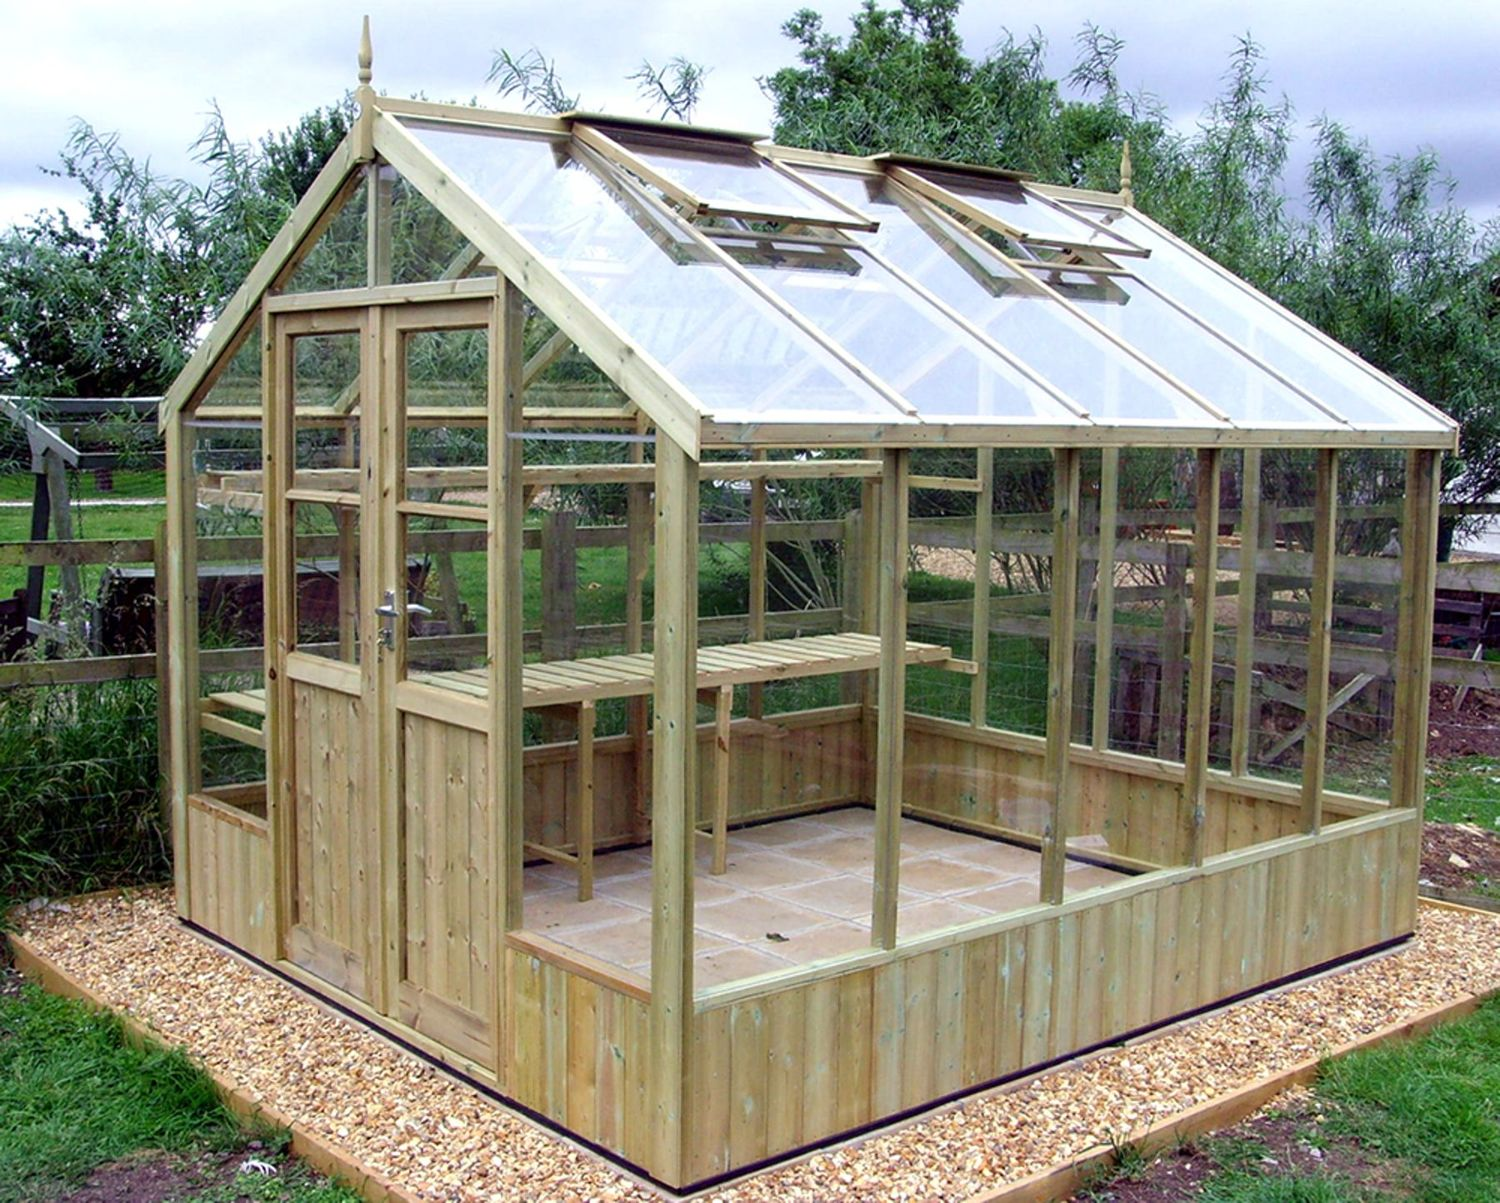 Swallow Raven 8x8 Wooden Greenhouse | Greenhouse Stores